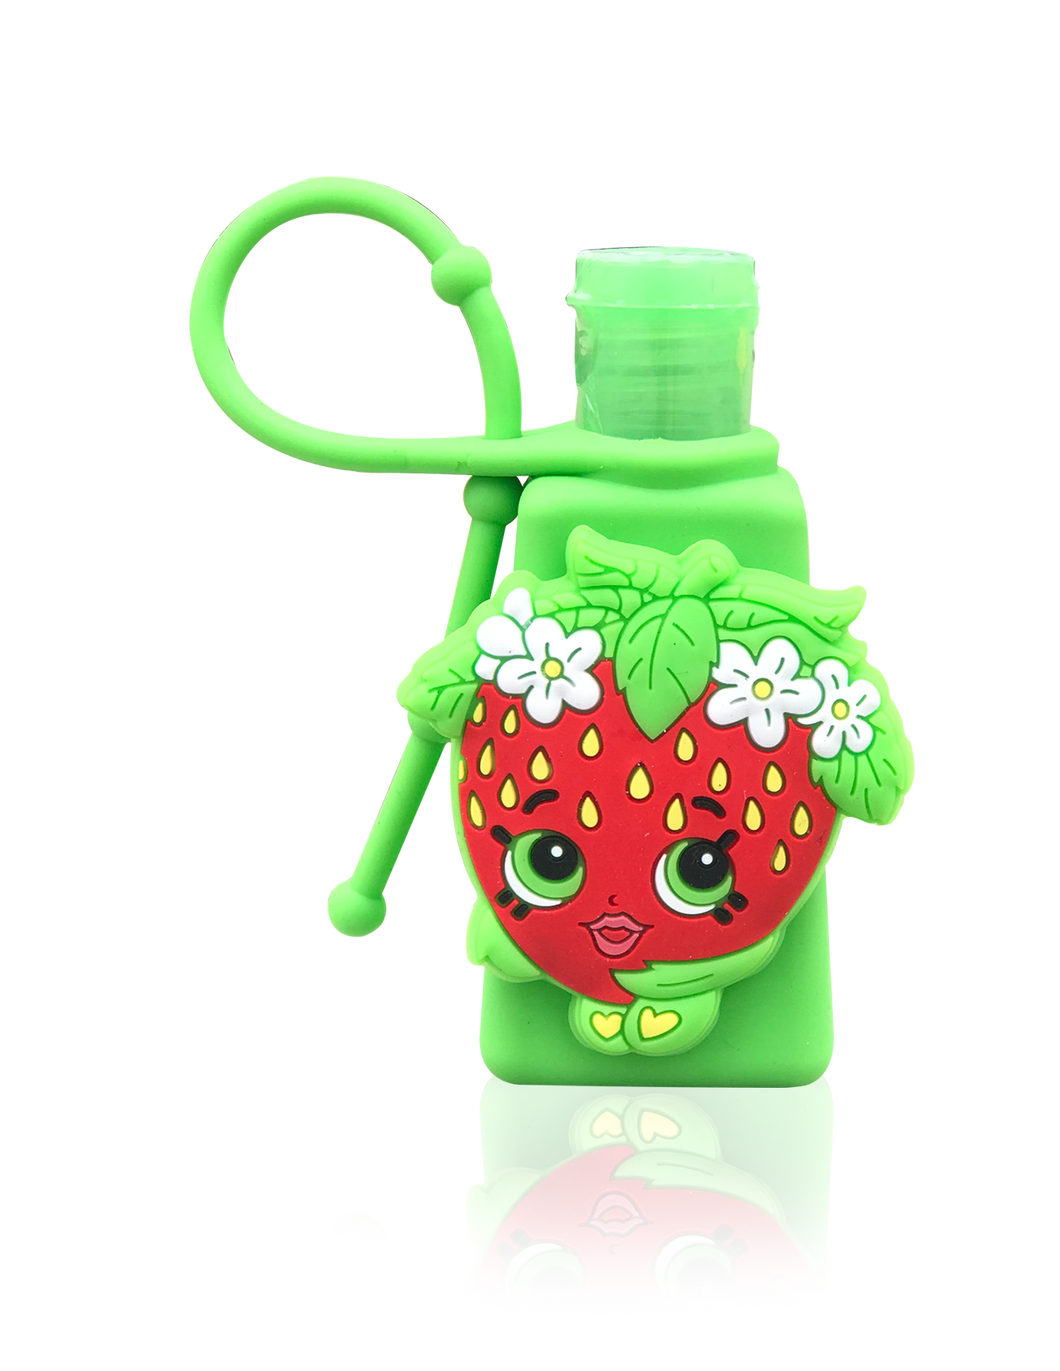 Shopkins Strawberry kiss 3D Hand Sanitizer - Smart Care